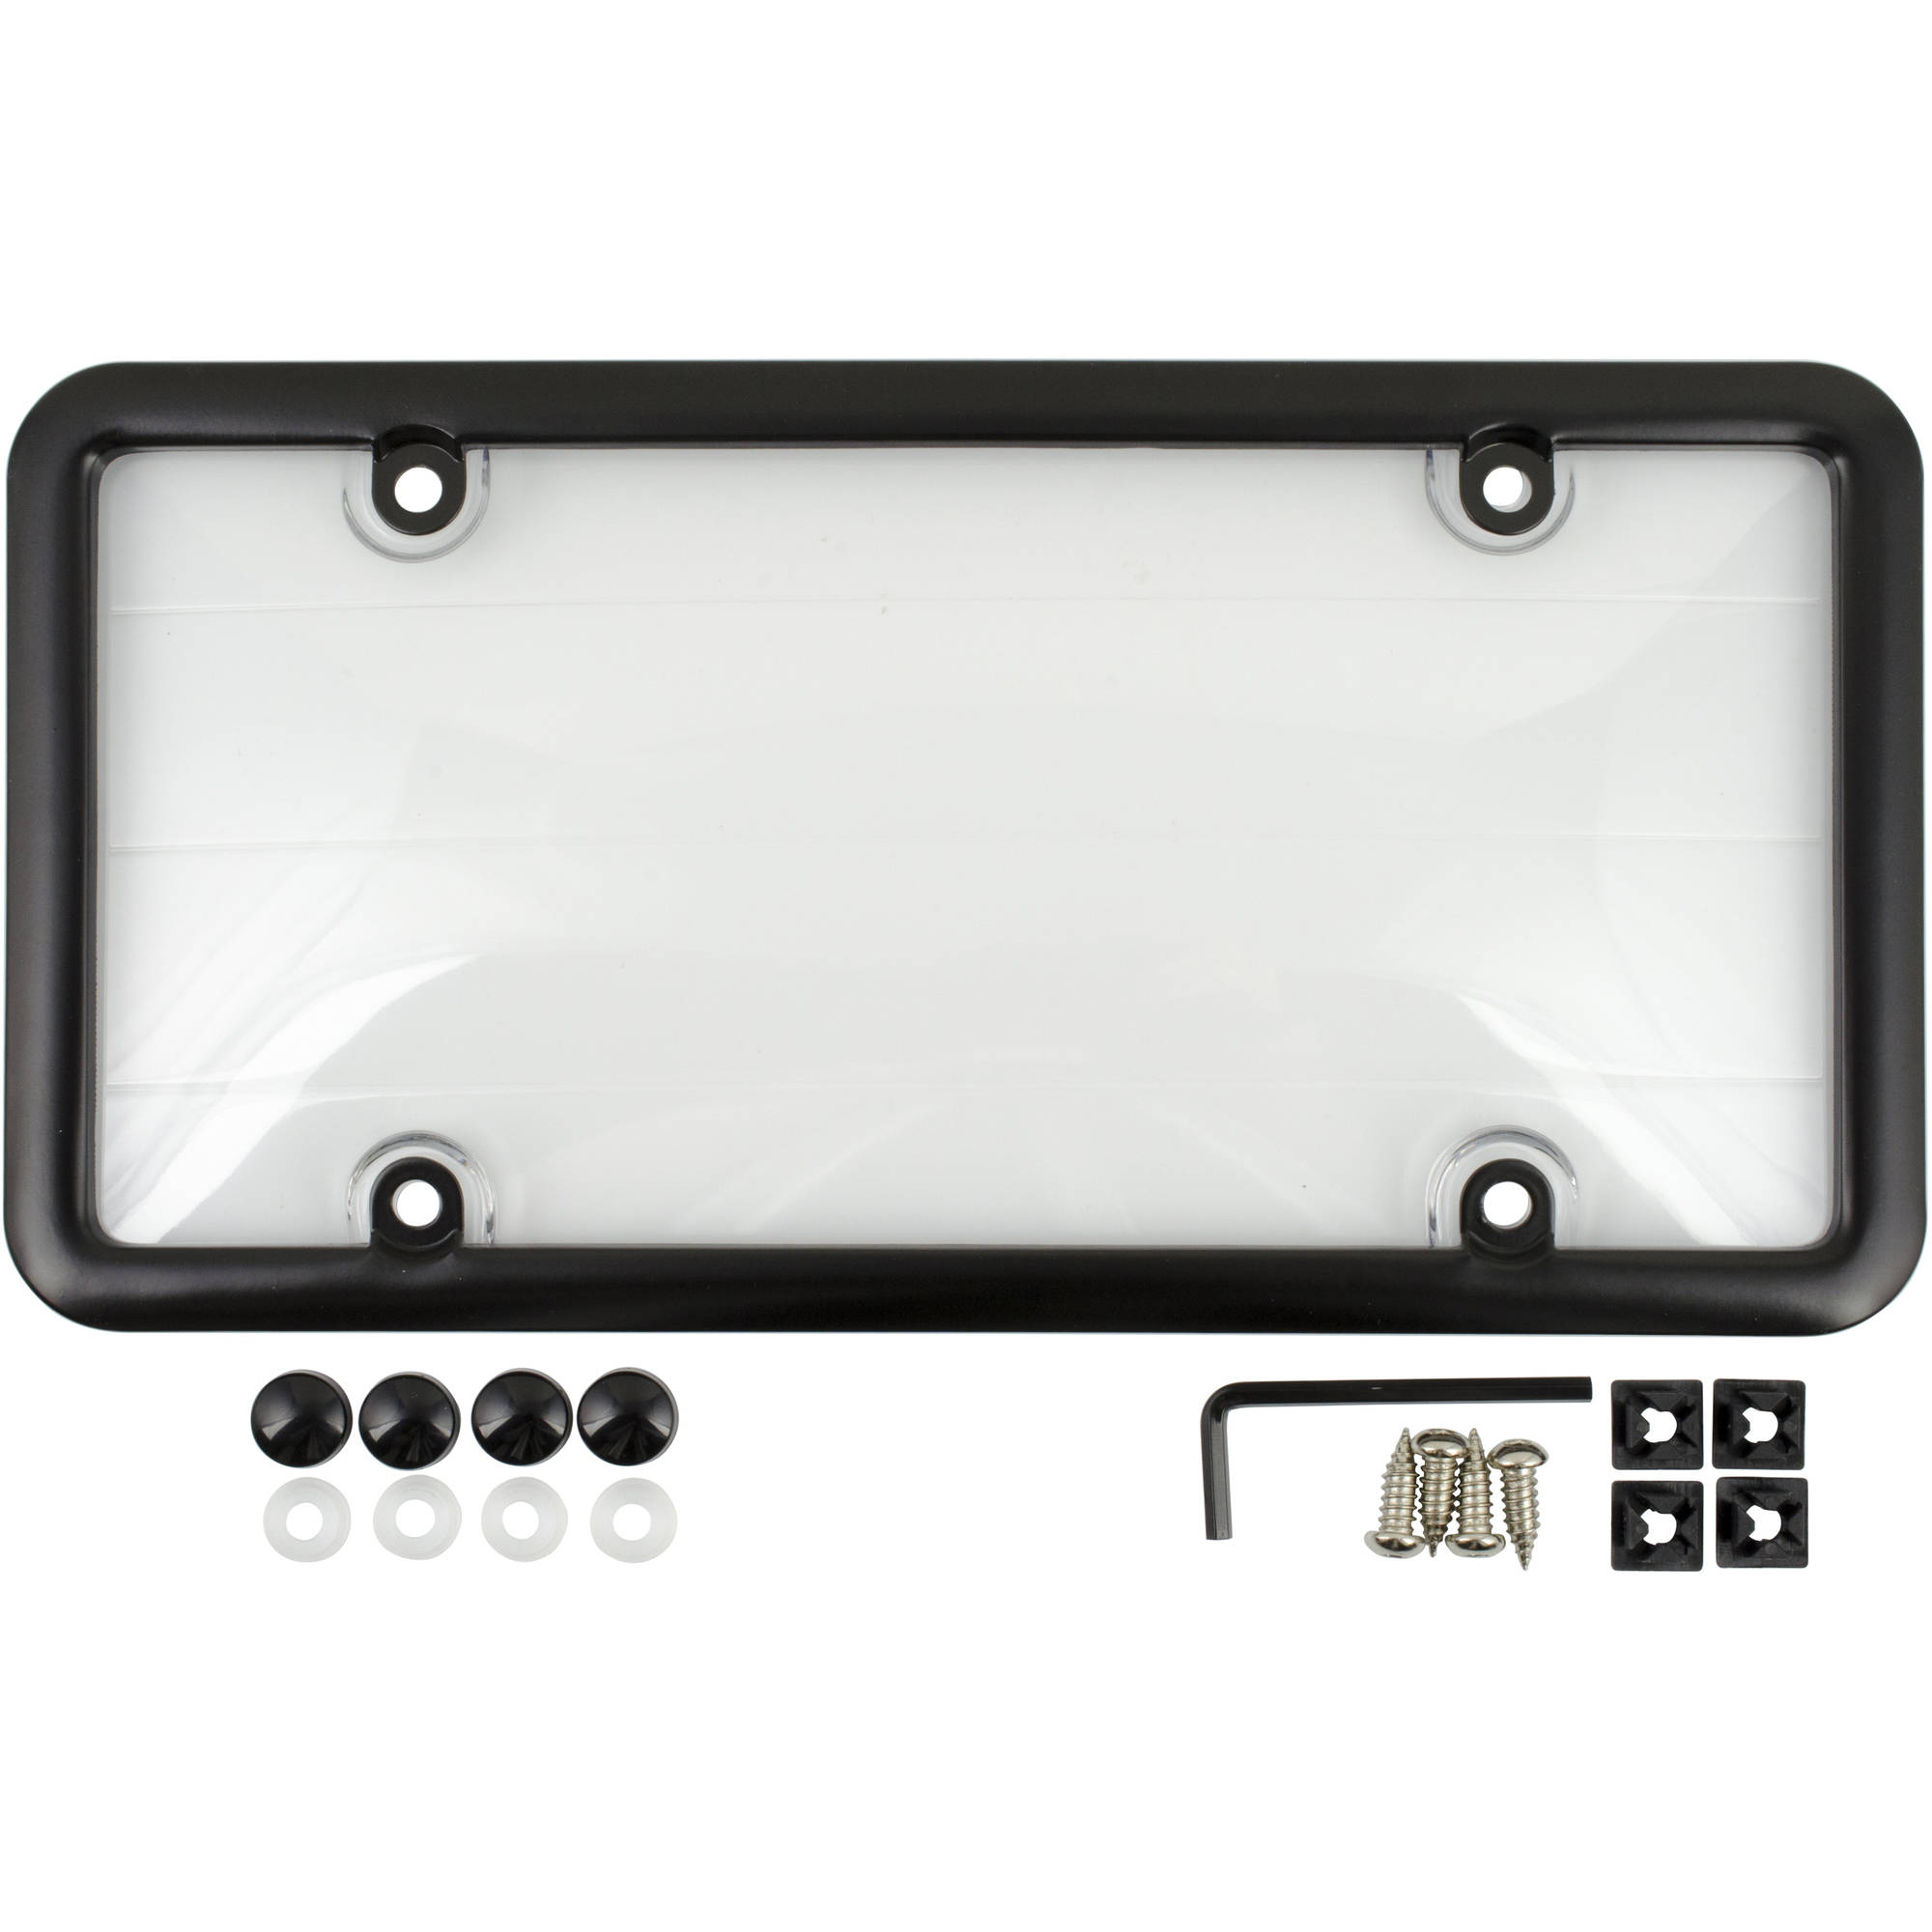 License Plate Cover and Frame, Black